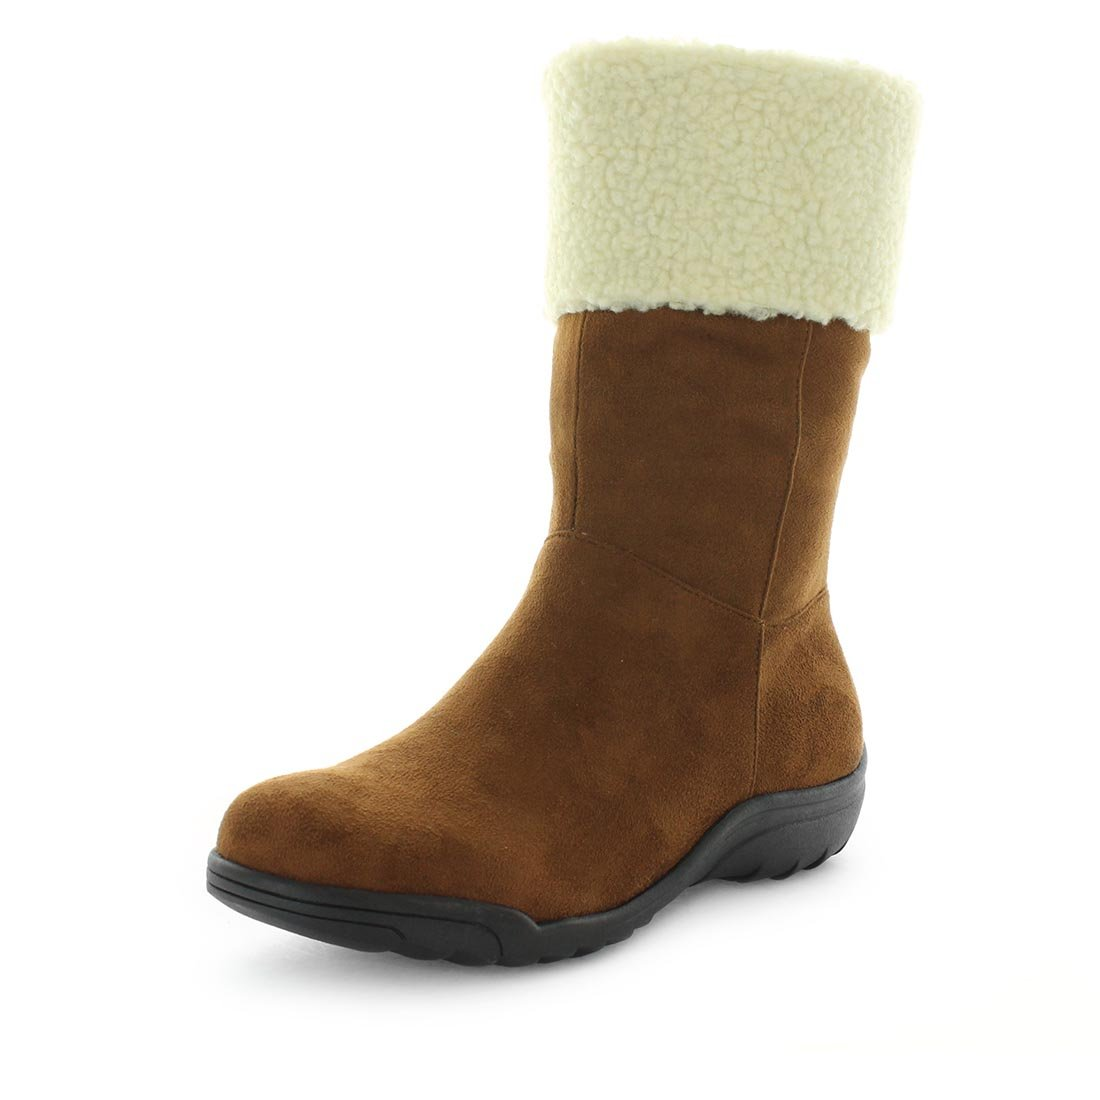 Womens faux fur boots, womens long boots, womens boots, just bee boots